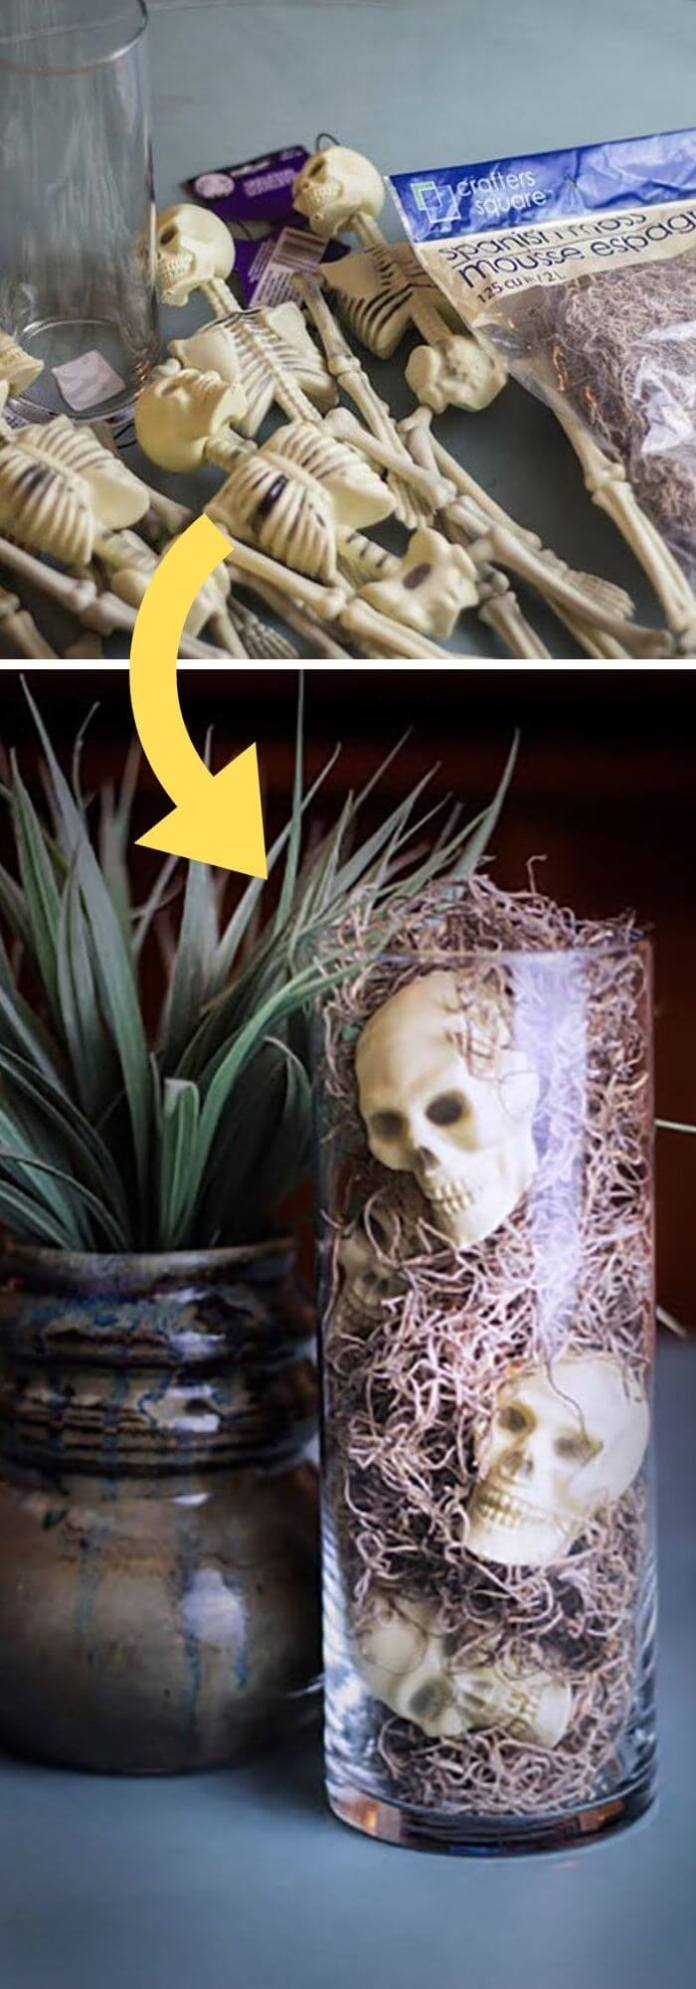 18 Best DIY Dollar Store Halloween Decorations For 2020